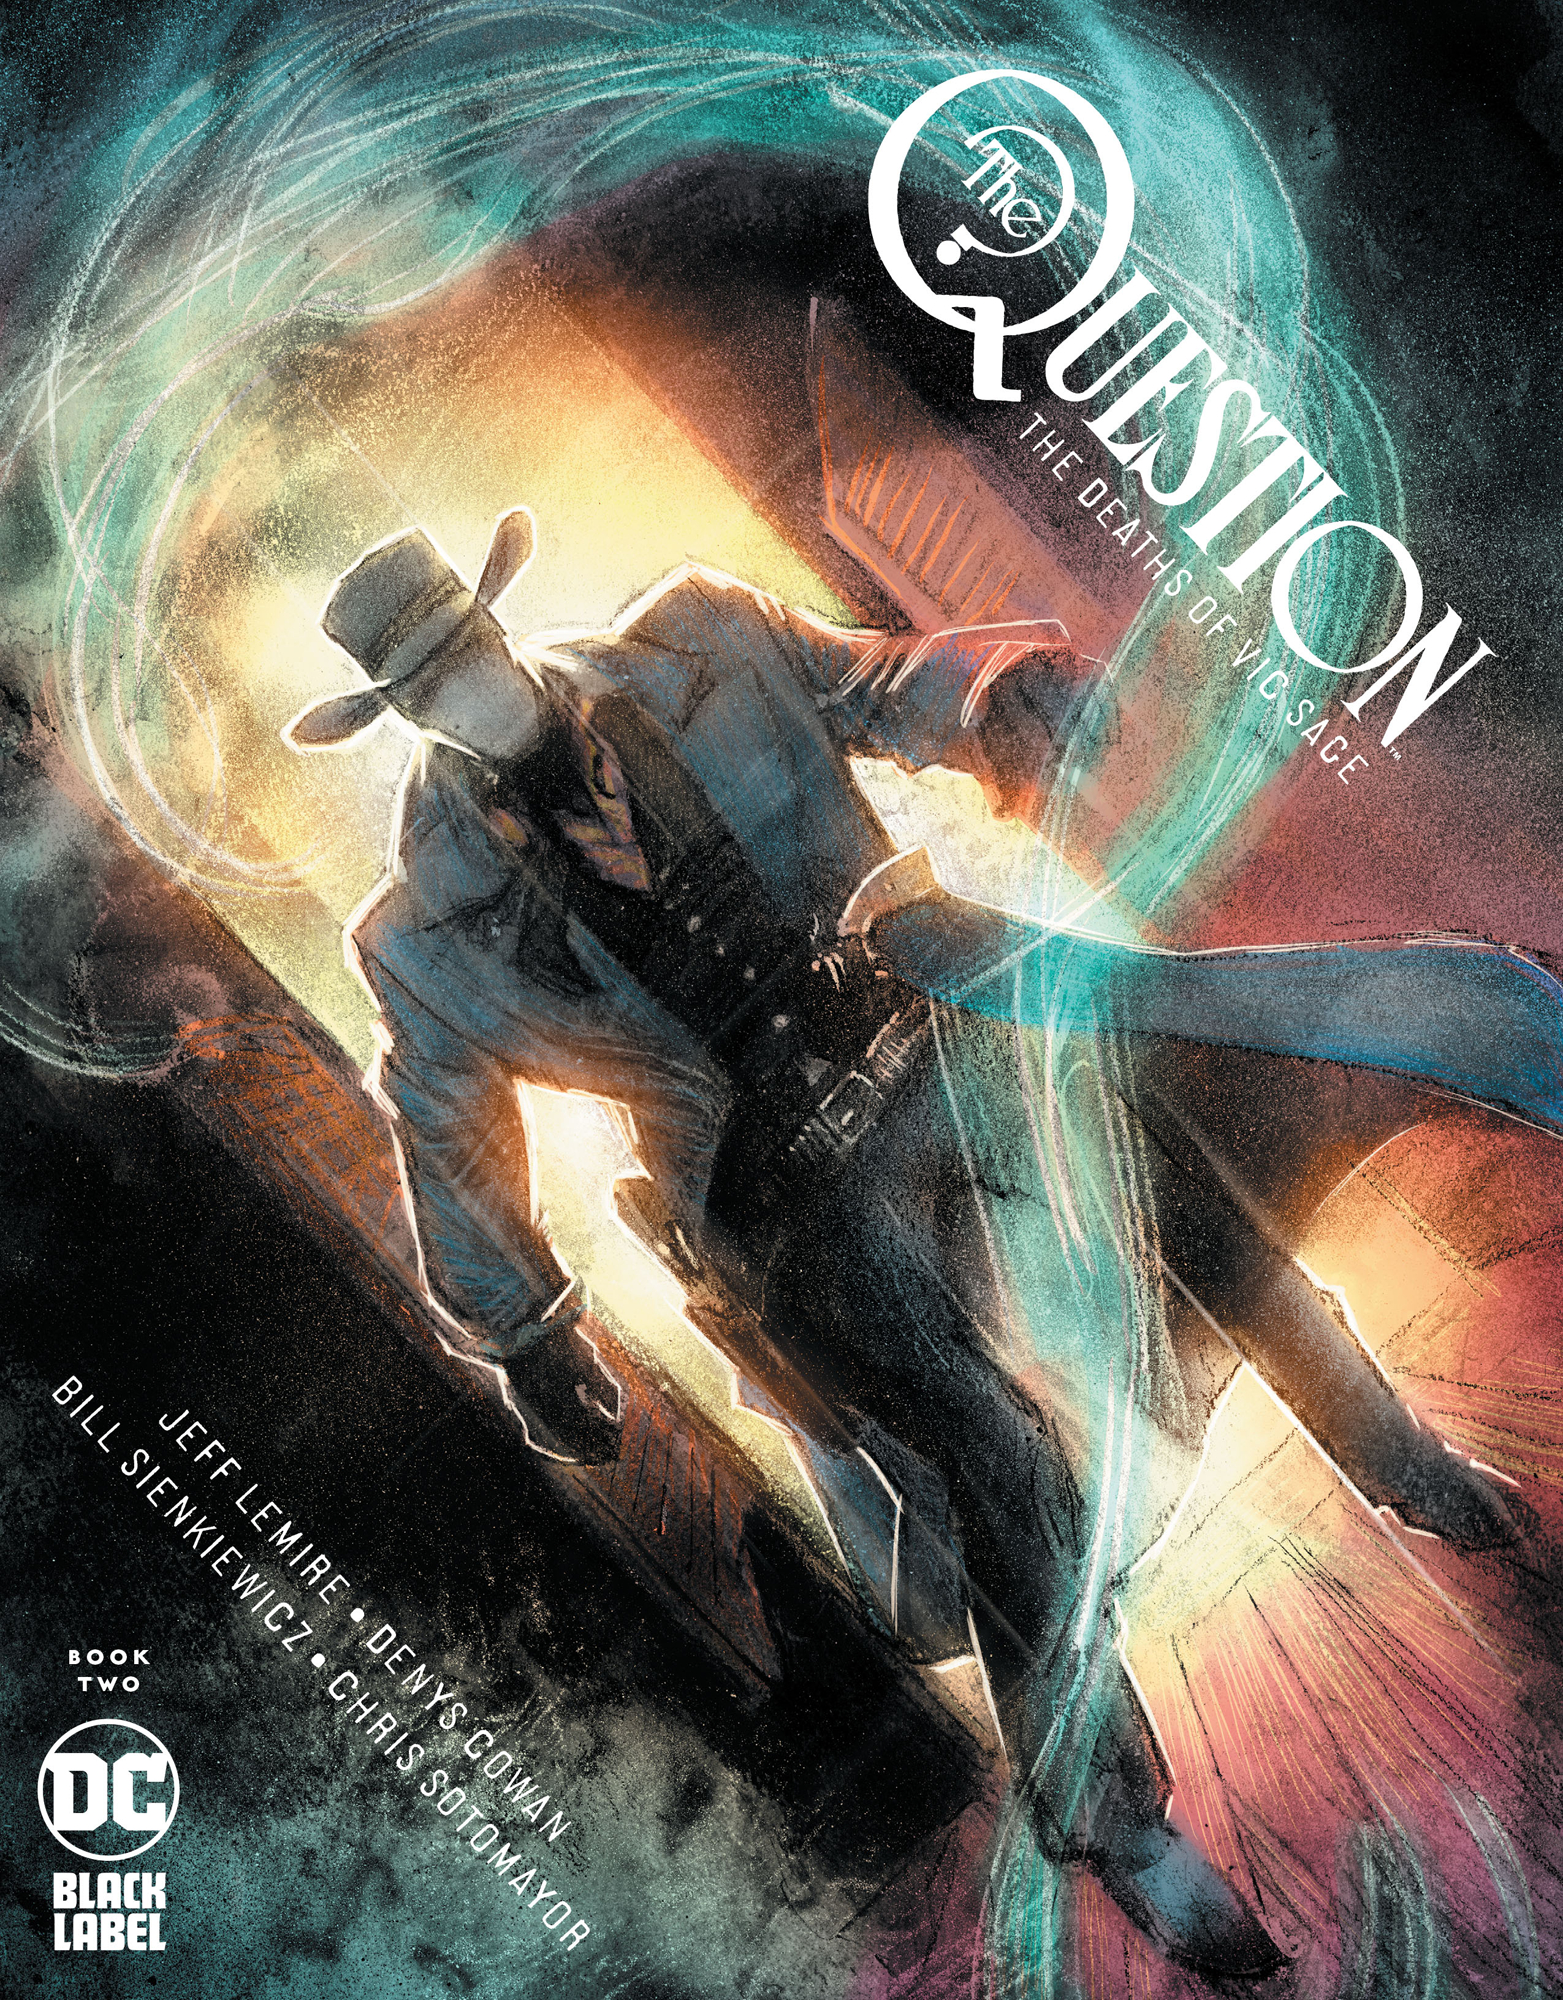 QUESTION THE DEATHS OF VIC SAGE #2 (OF 4)